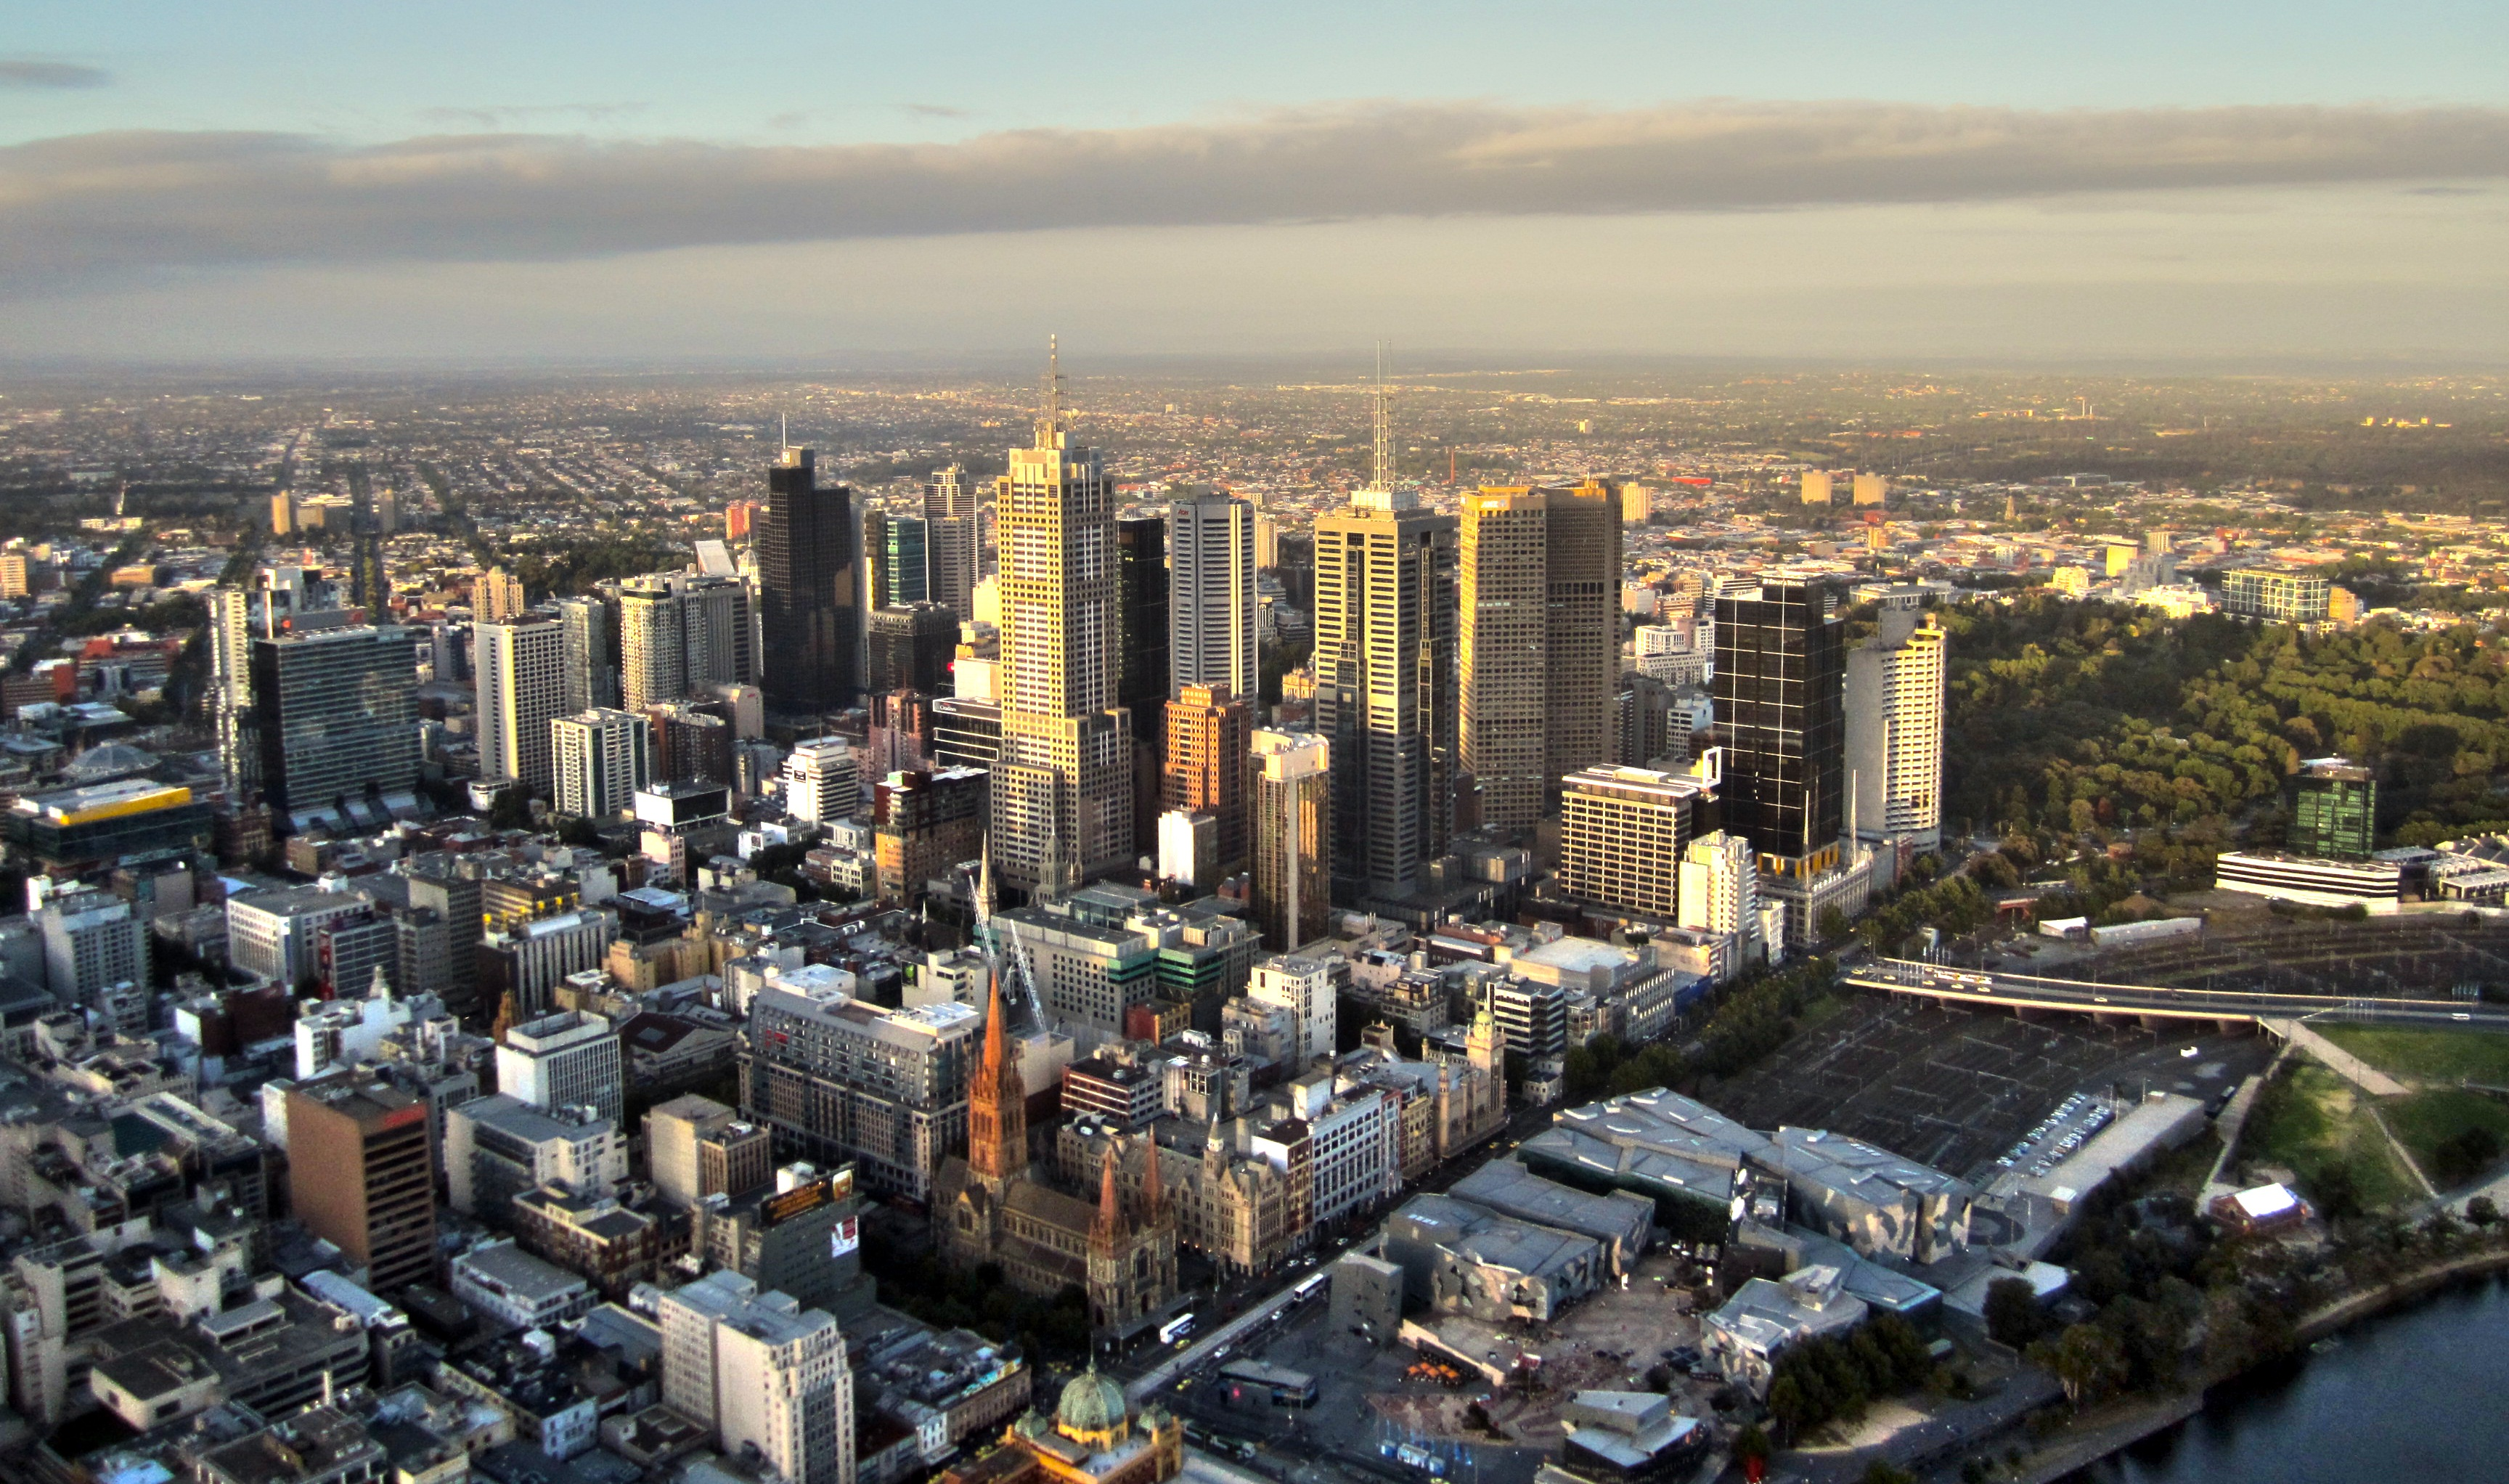 Melbourne is on track to be Australia's largest city as early as 2030